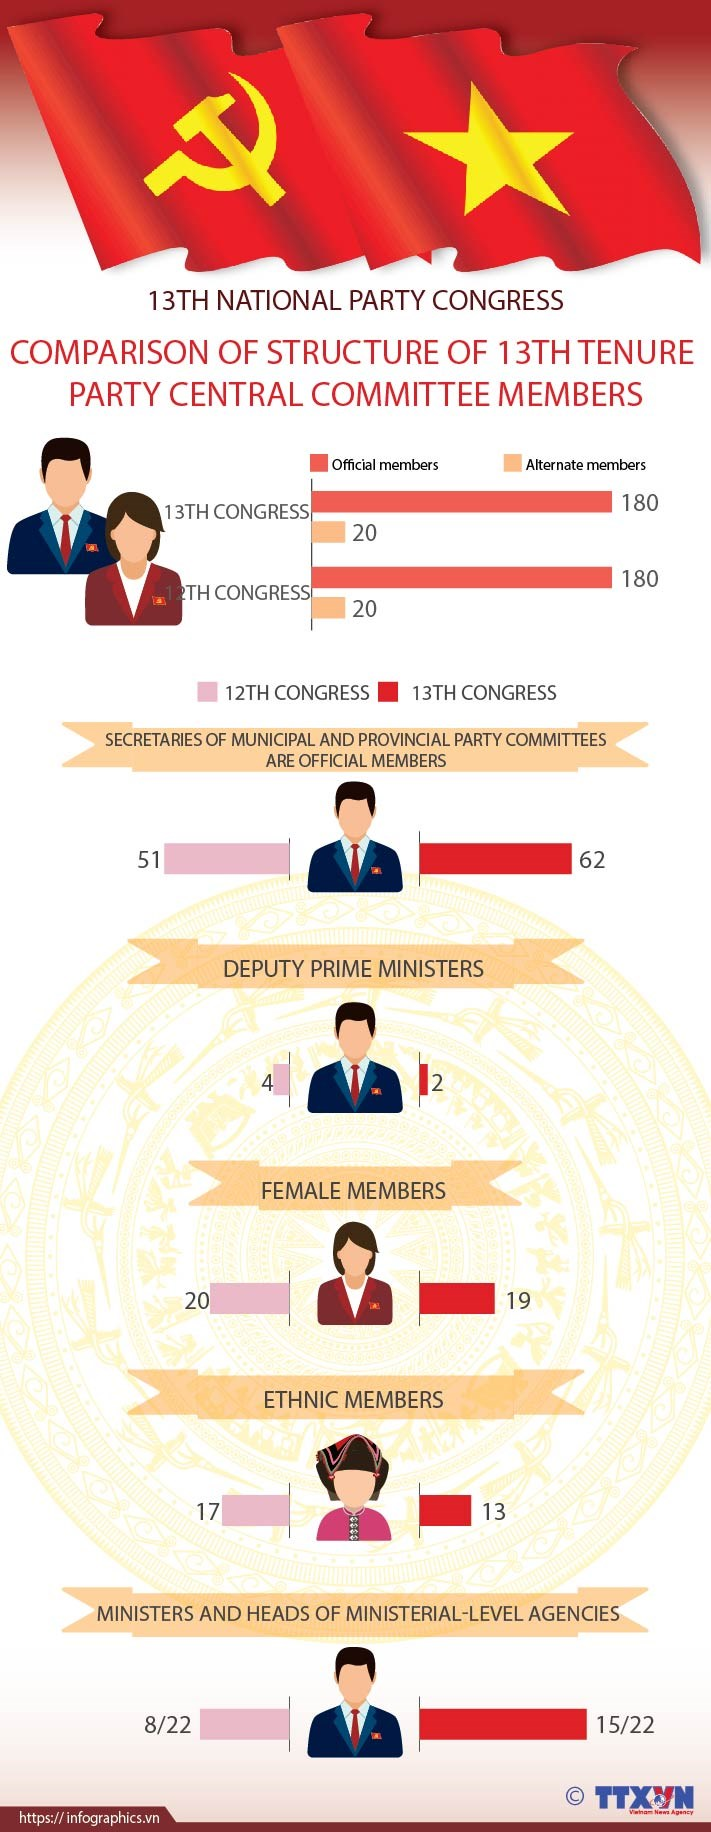 Comparison of structure of 13th tenure Party Central Committee members hinh anh 1